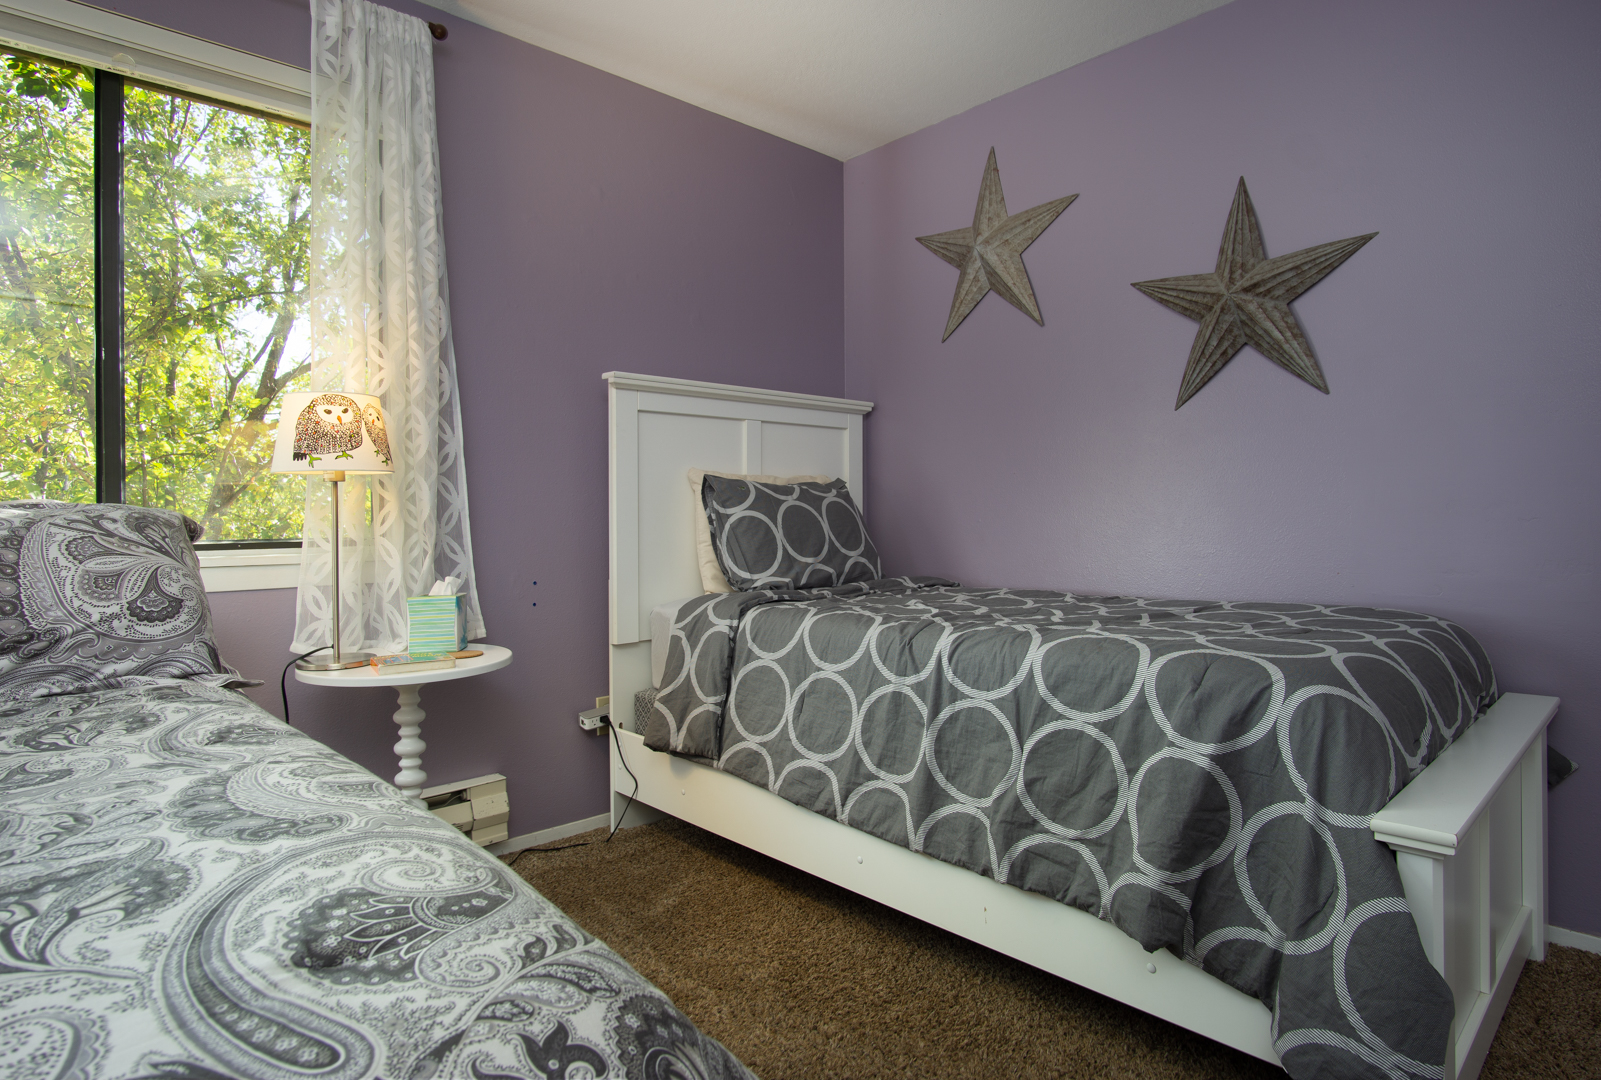 Cozy Purple and Gray Decor in Bedroom Two